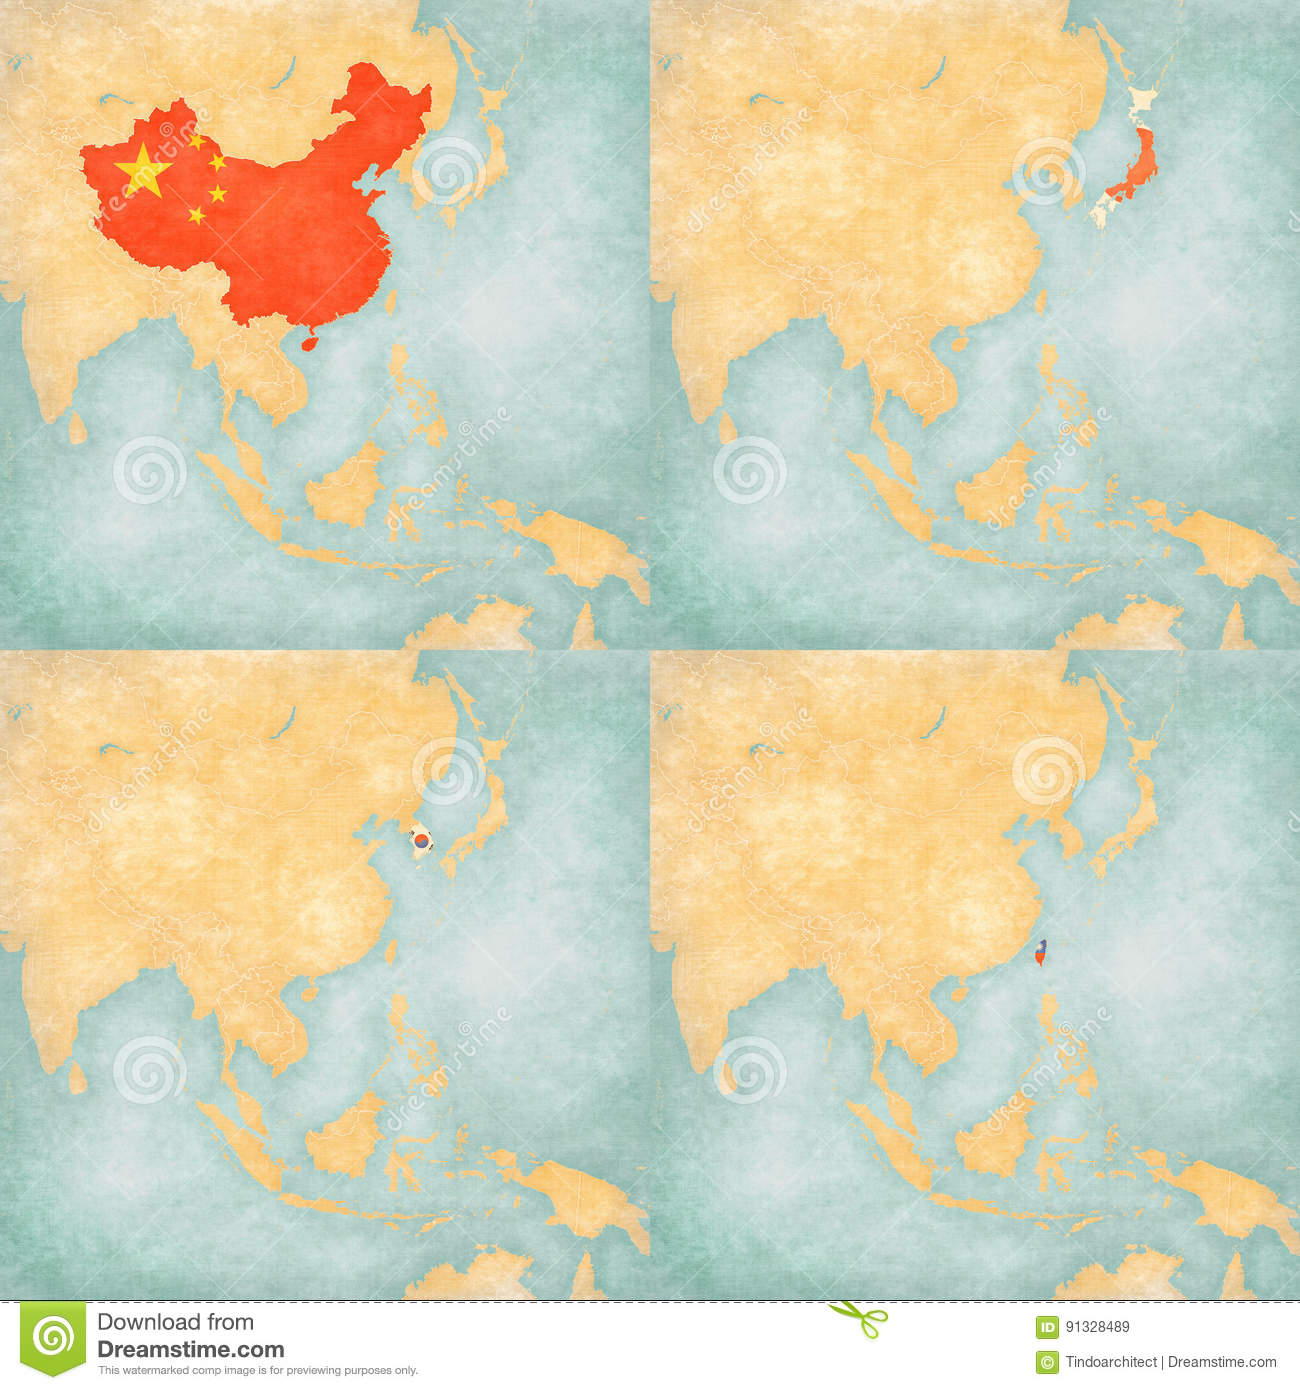 A Map Of East Asia.Map Of East Asia China Japan South Korea And Taiwan Stock